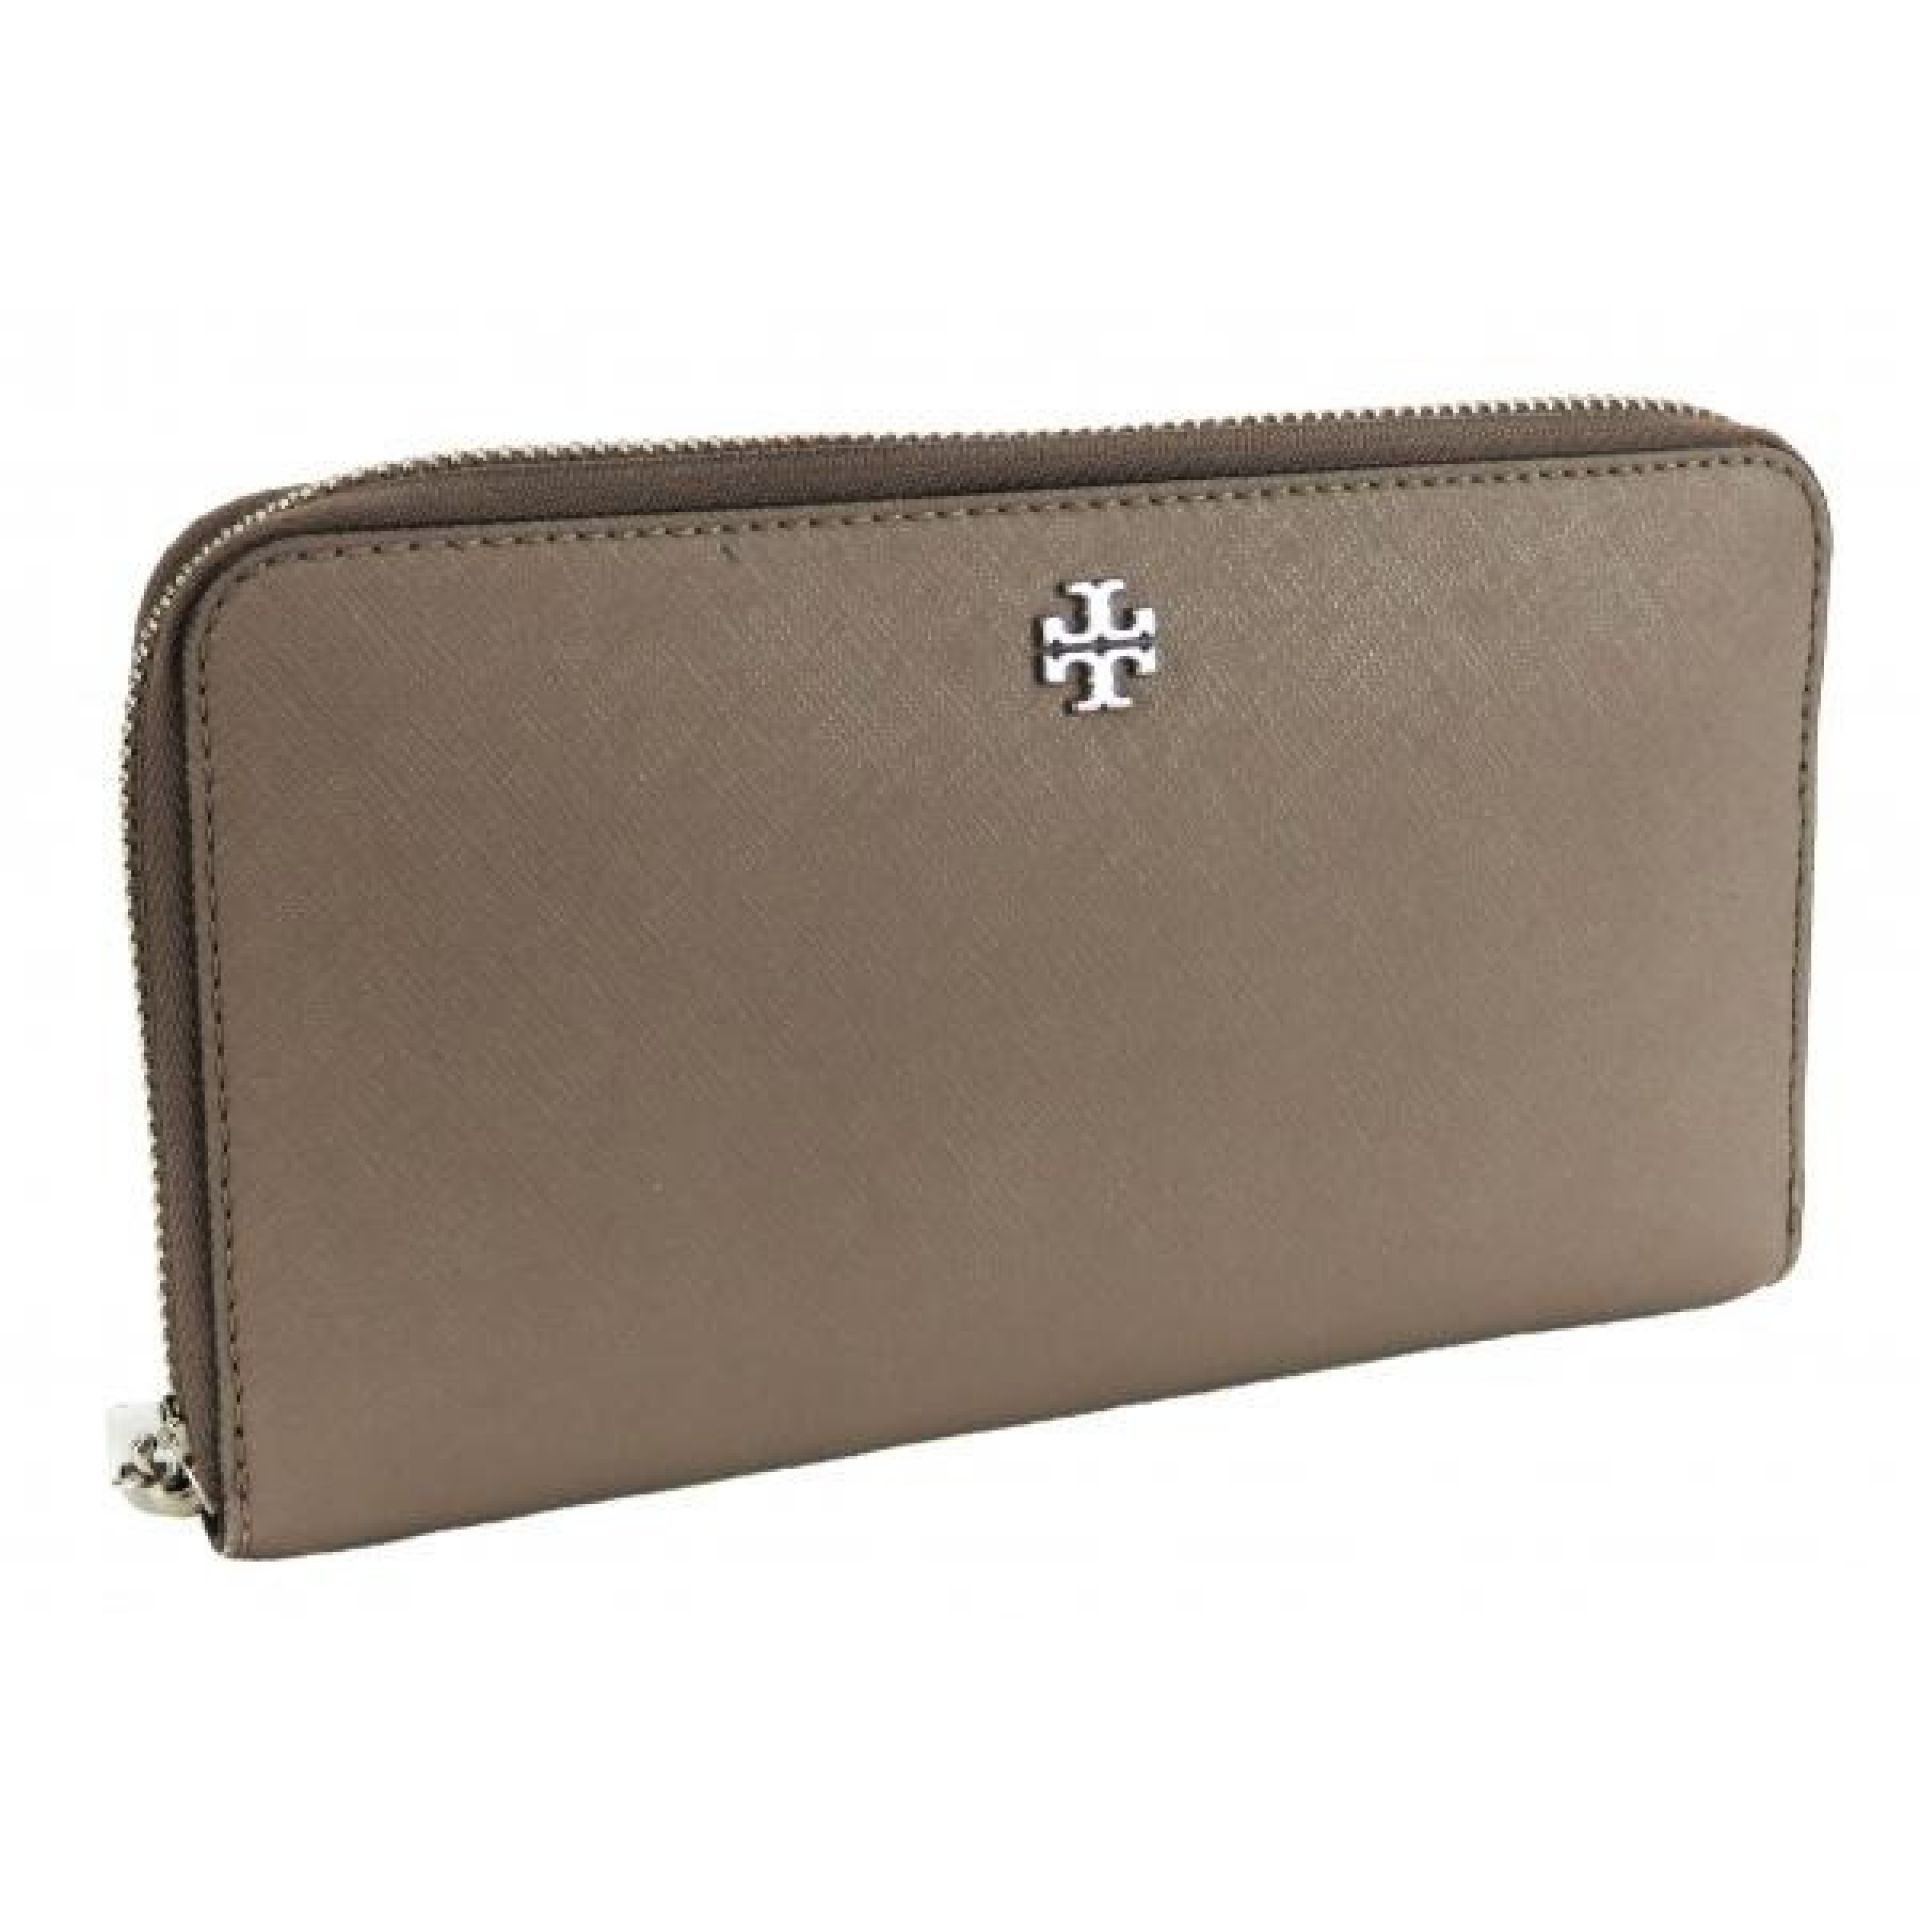 Tory Burch Grey Saffiano Leather Robinson Zip Continental Wallet